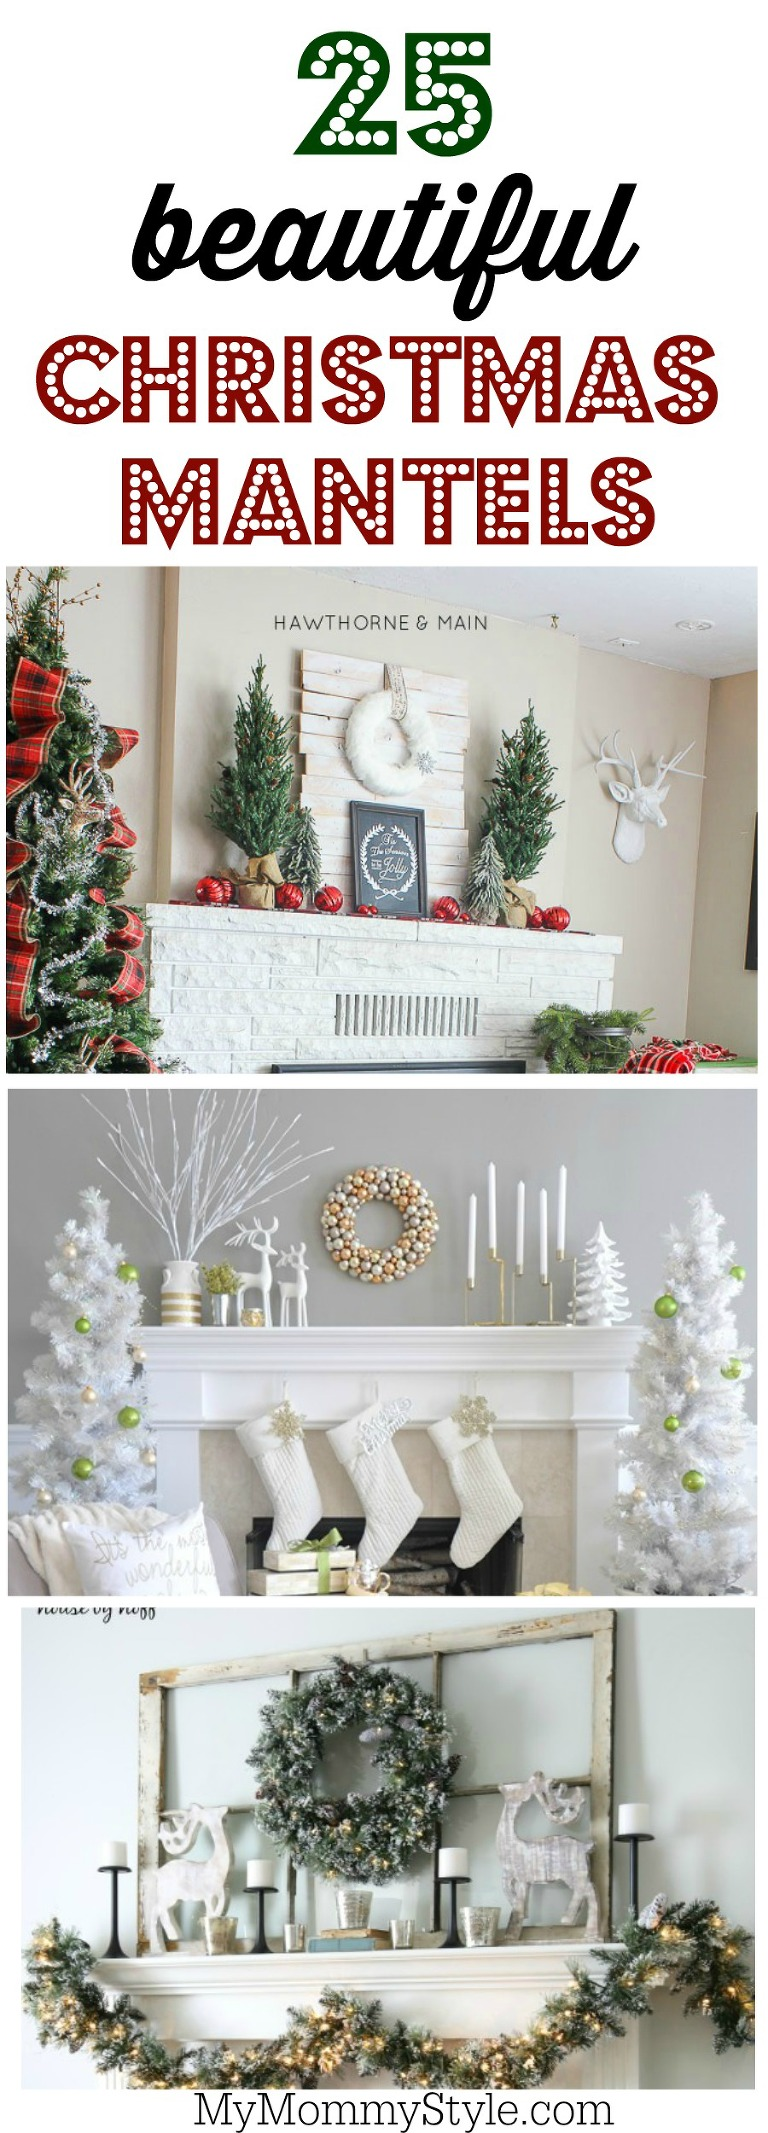 Design Christmas Mantel Ideas christmas mantel ideas my mommy style 25 beautiful decorating ideas